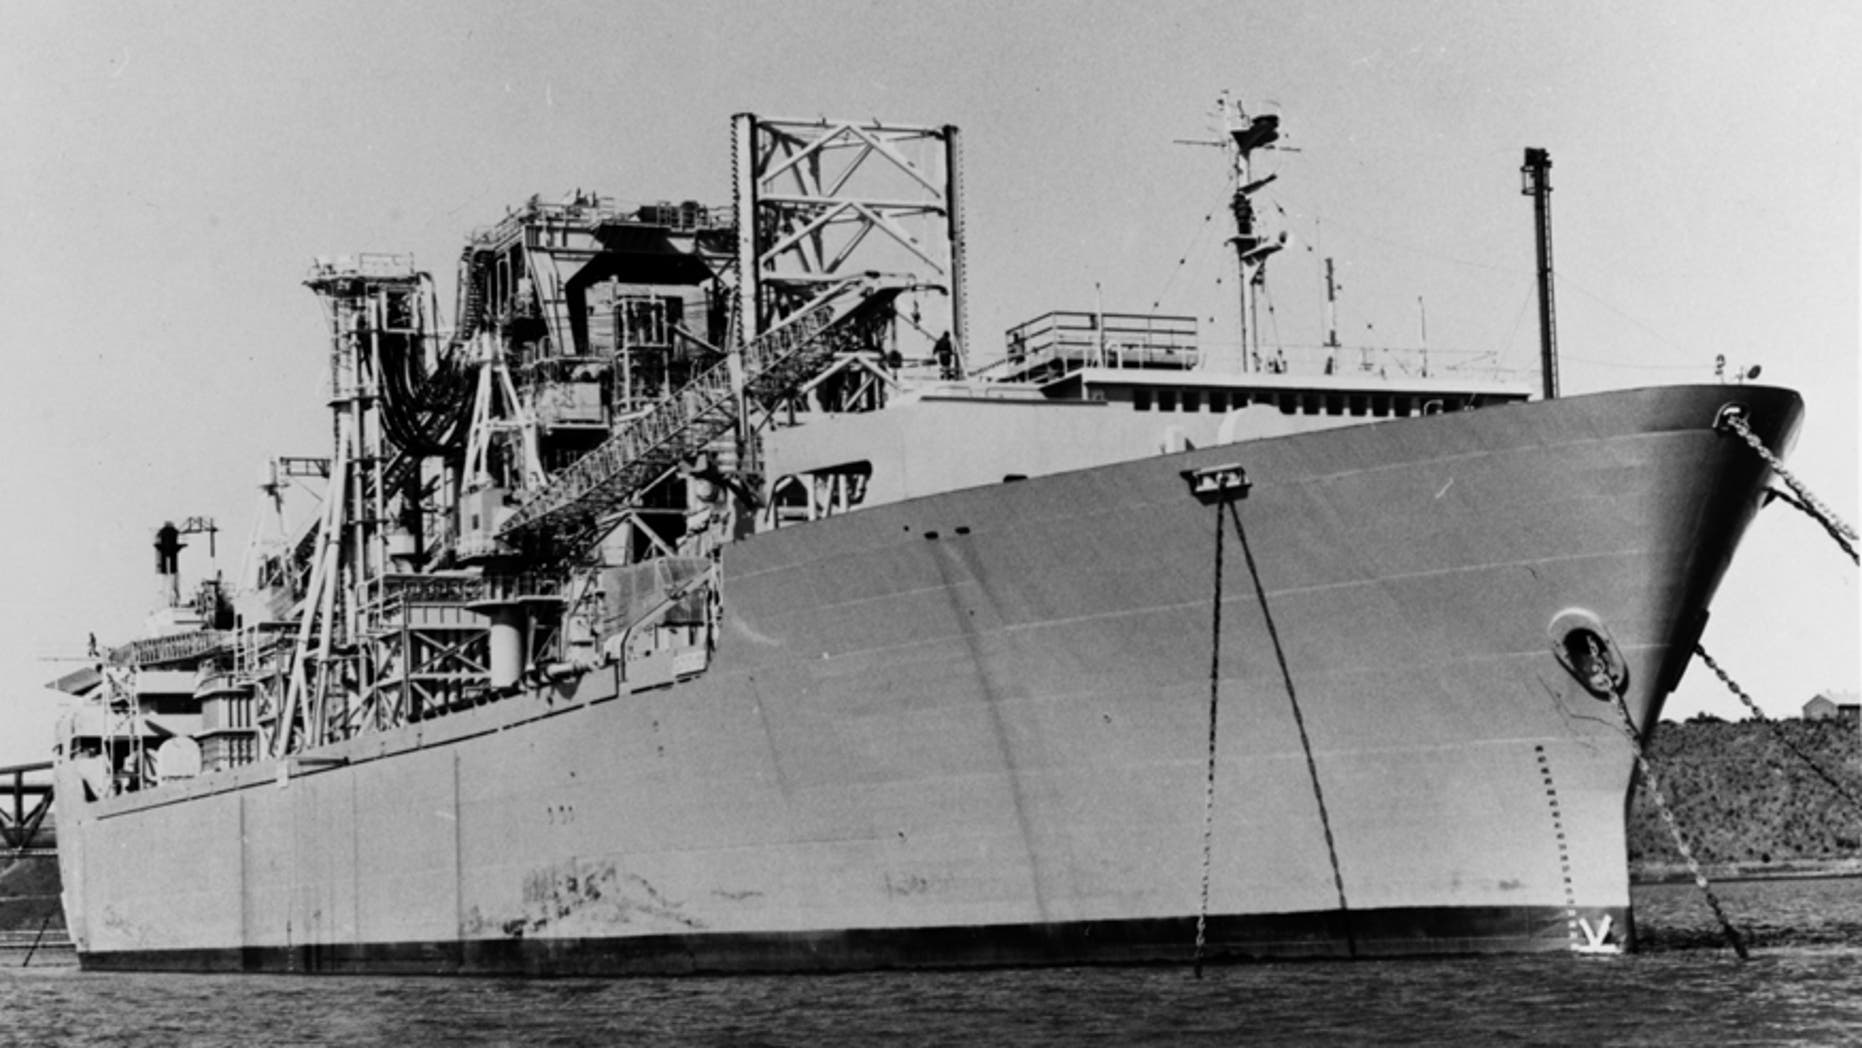 File photo - The Glomar Explorer ship is seen anchored in the U.S. Navy's National Defense Reserve Fleet anchored in Suisan Bay, California in this U.S. Navy handout file photo taken on May 15, 1977.